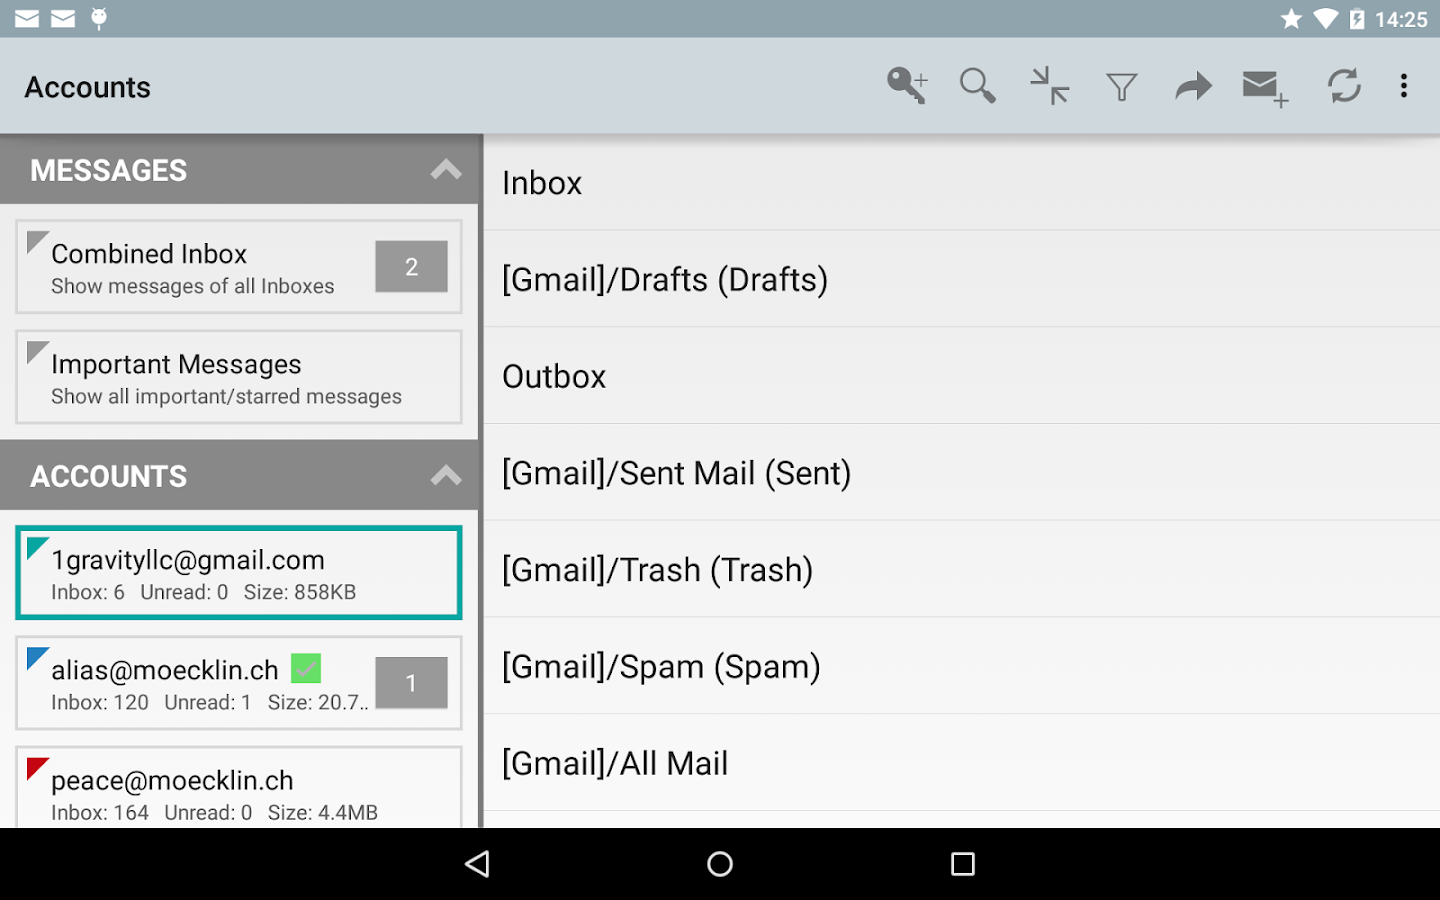 K-@ Mail Pro - Email App Screenshot 11